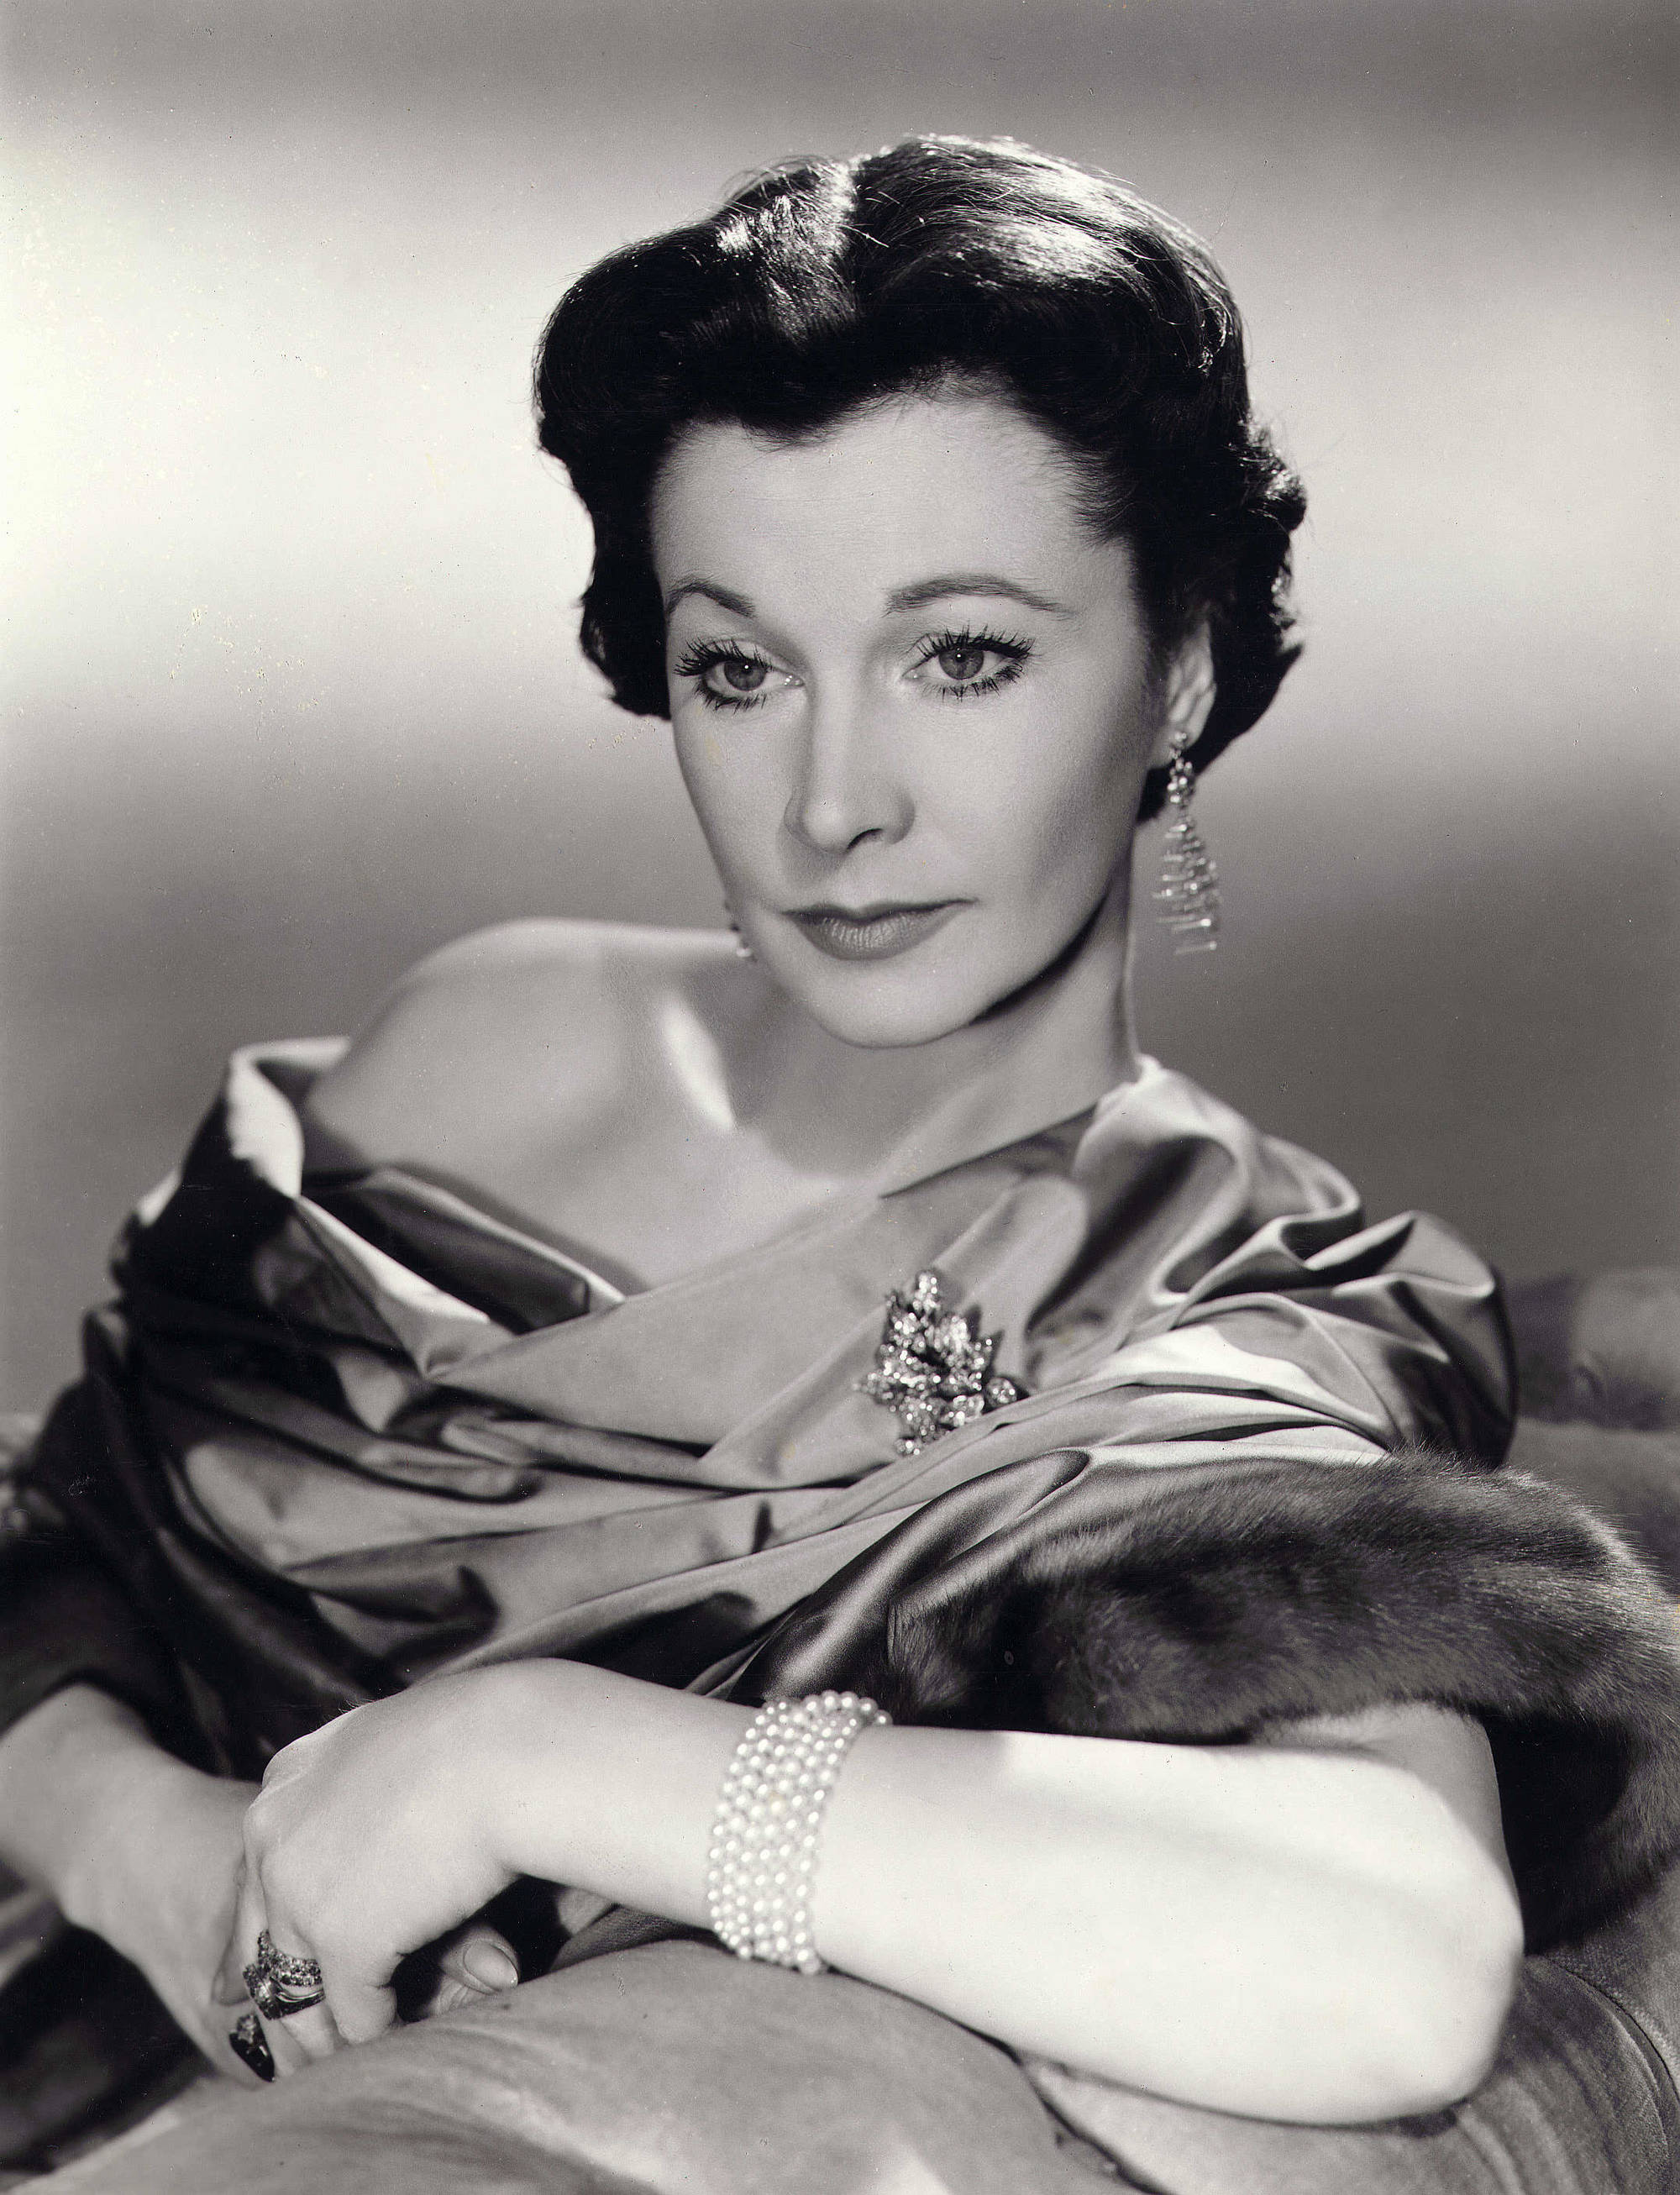 1930s hairstyles: Vivien Leigh black and white promo picture with her brown hair styled in a classic centre parted updo wearing a evening off the shoulder gown and white gloves